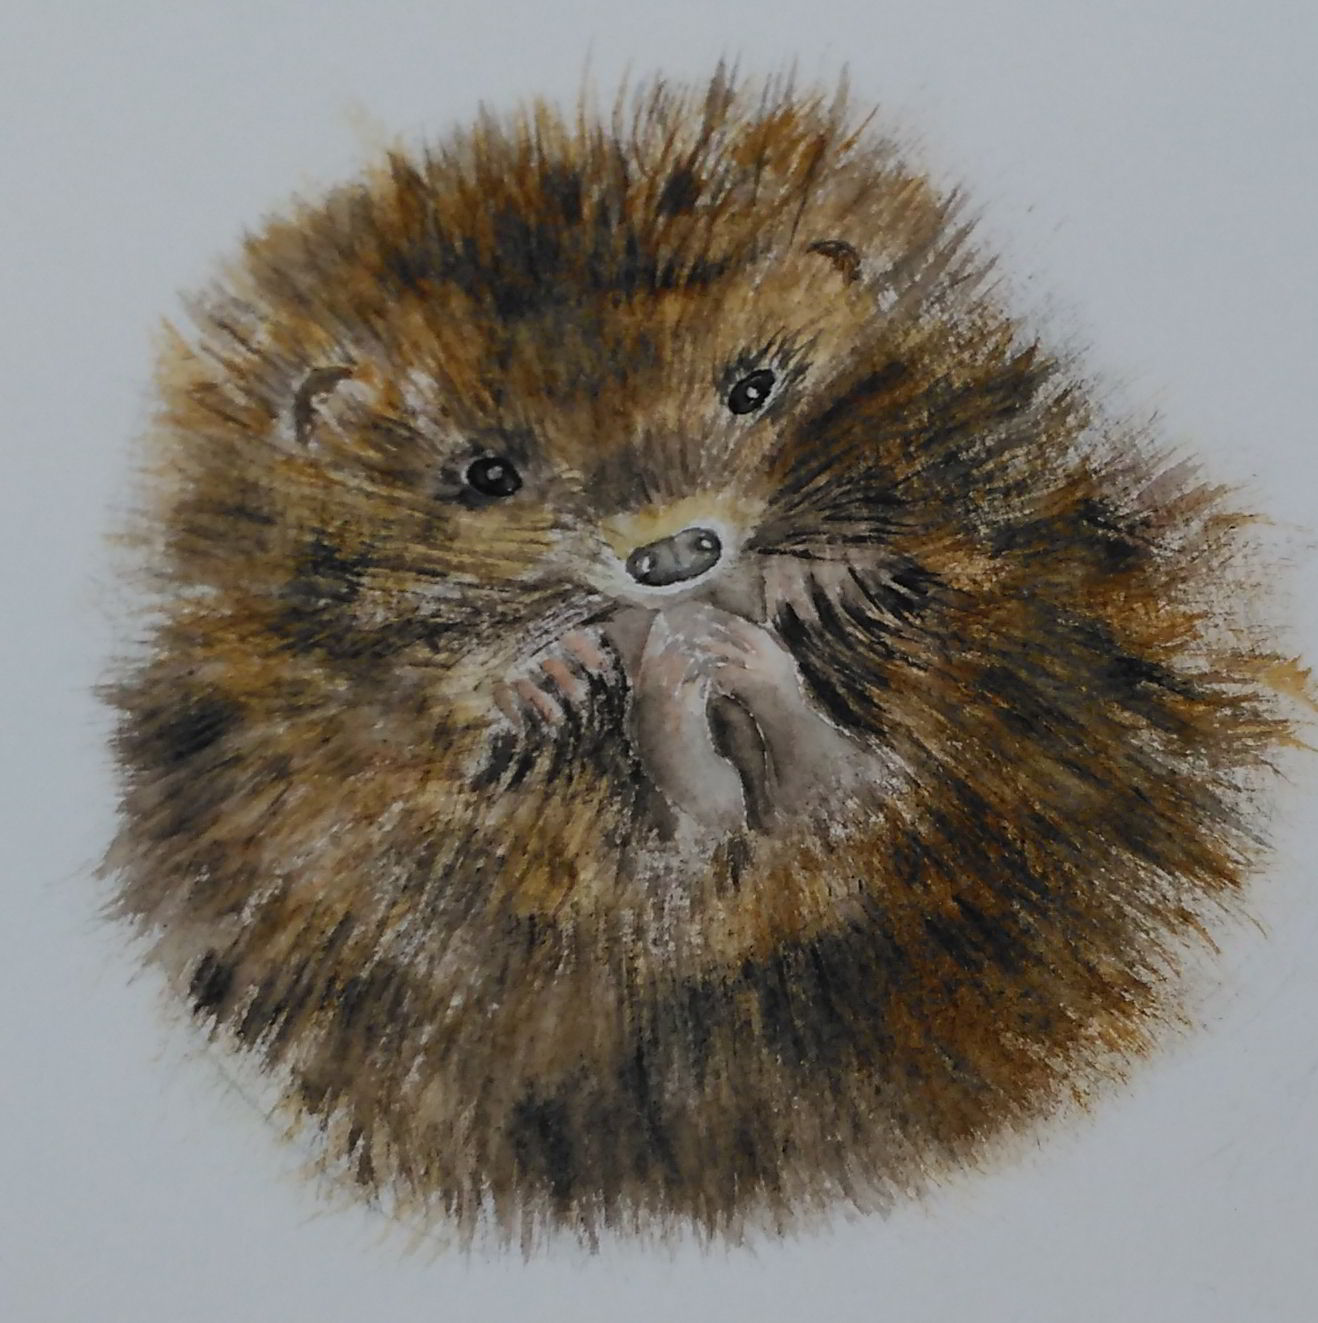 A watercolour painting of a baby hedgehog